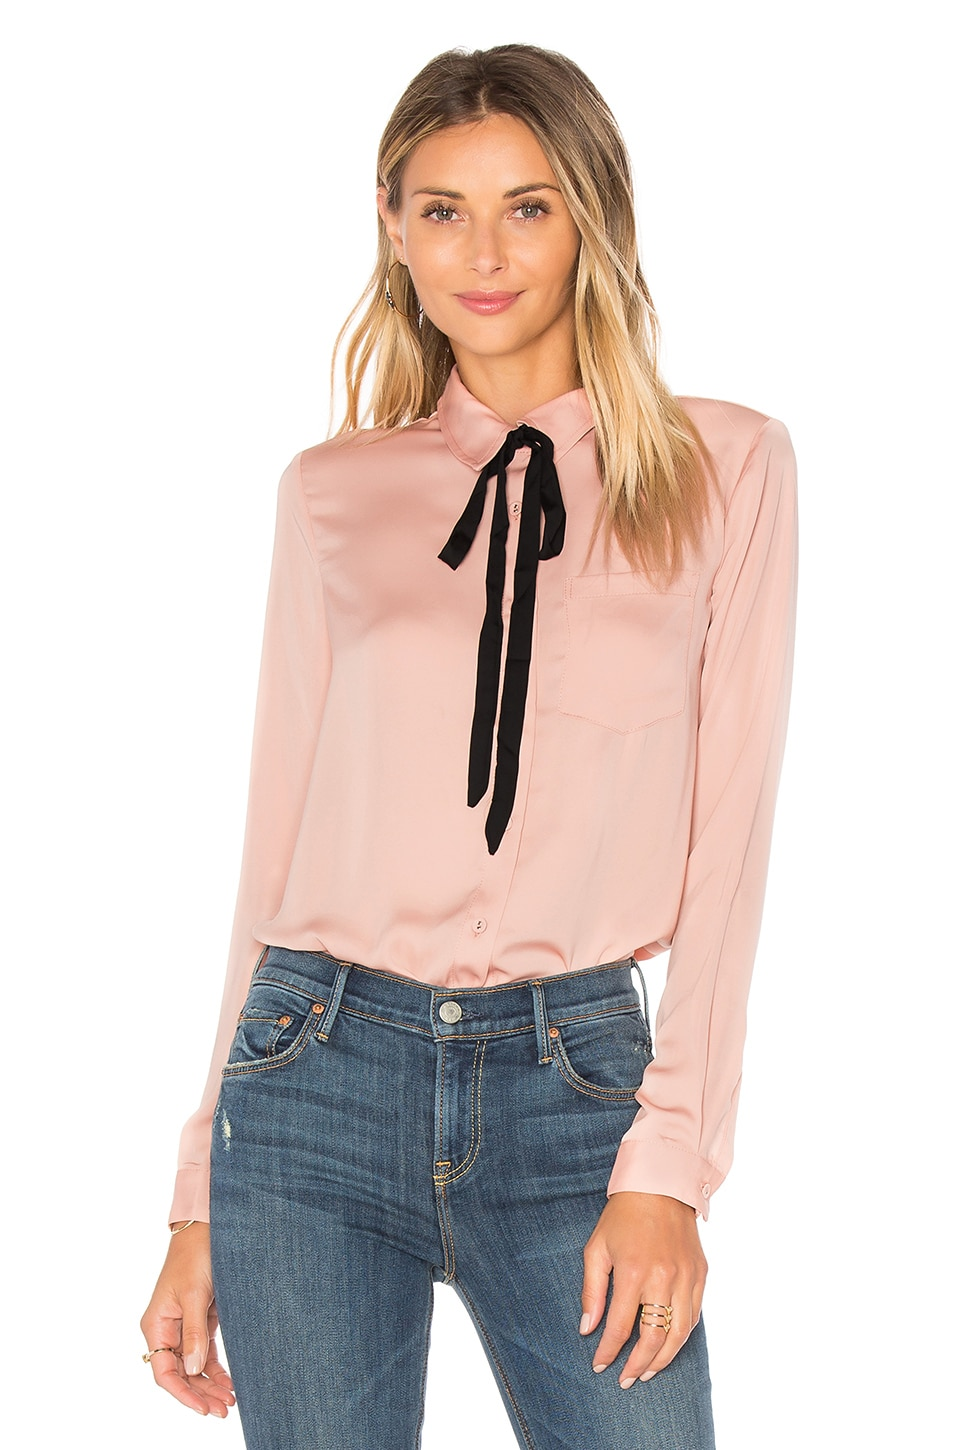 L'Academie x REVOLVE The Classic Blouse in Nude